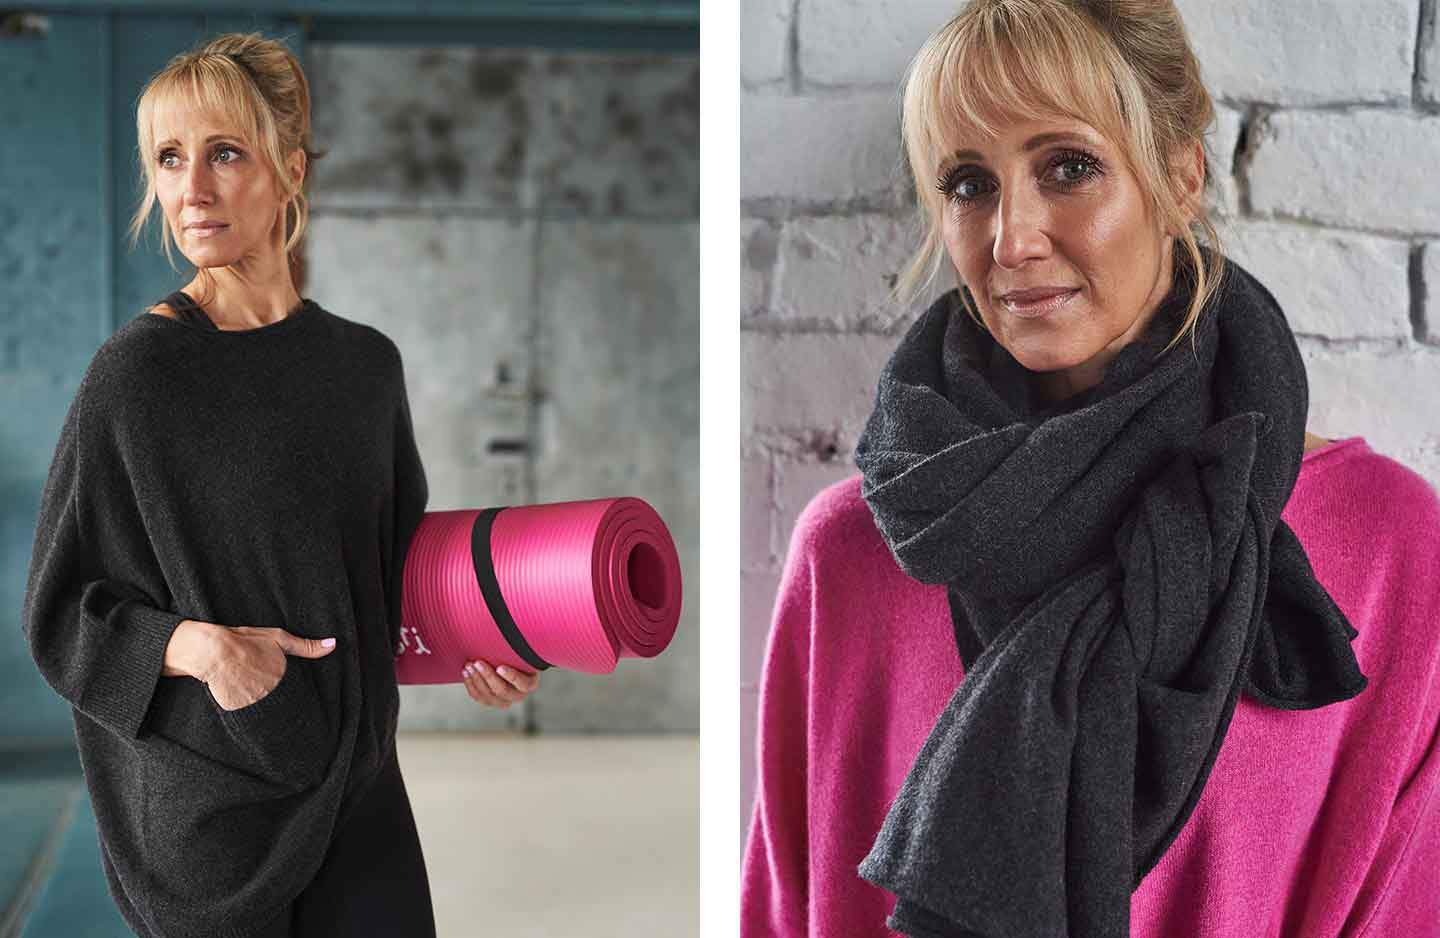 Women standing in a grey oversized charcoal poncho with hand in pocket carrying a pink yoga mat and women standing against white brick wall in pink cashmere jumper with grey cashmere wrap wrapped around neck